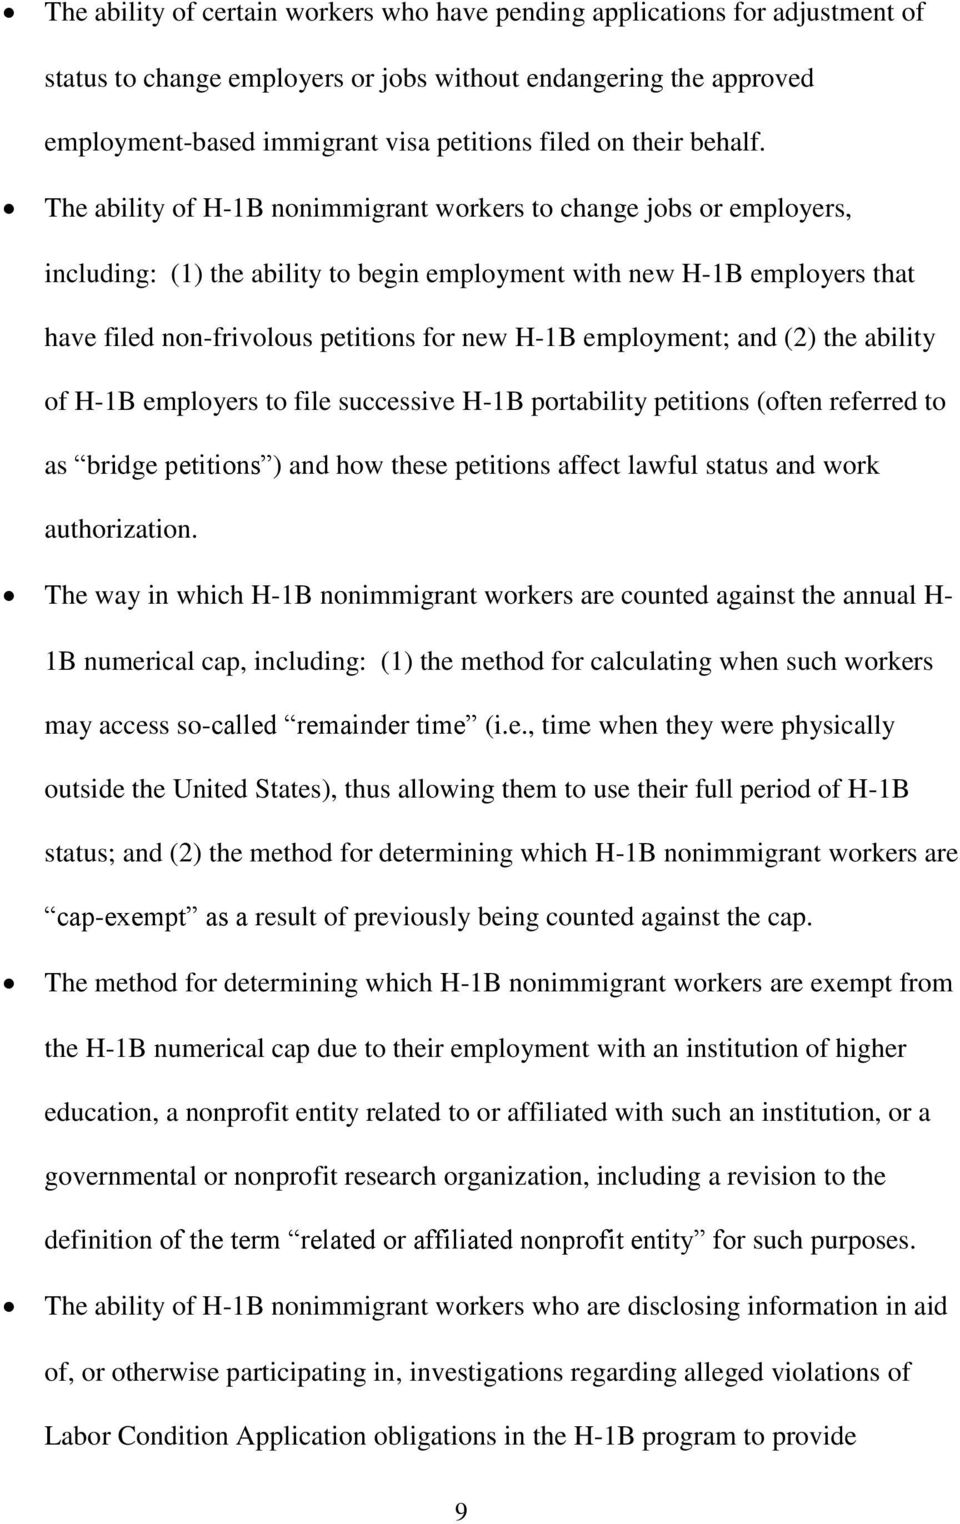 The ability of H-1B nonimmigrant workers to change jobs or employers, including: (1) the ability to begin employment with new H-1B employers that have filed non-frivolous petitions for new H-1B